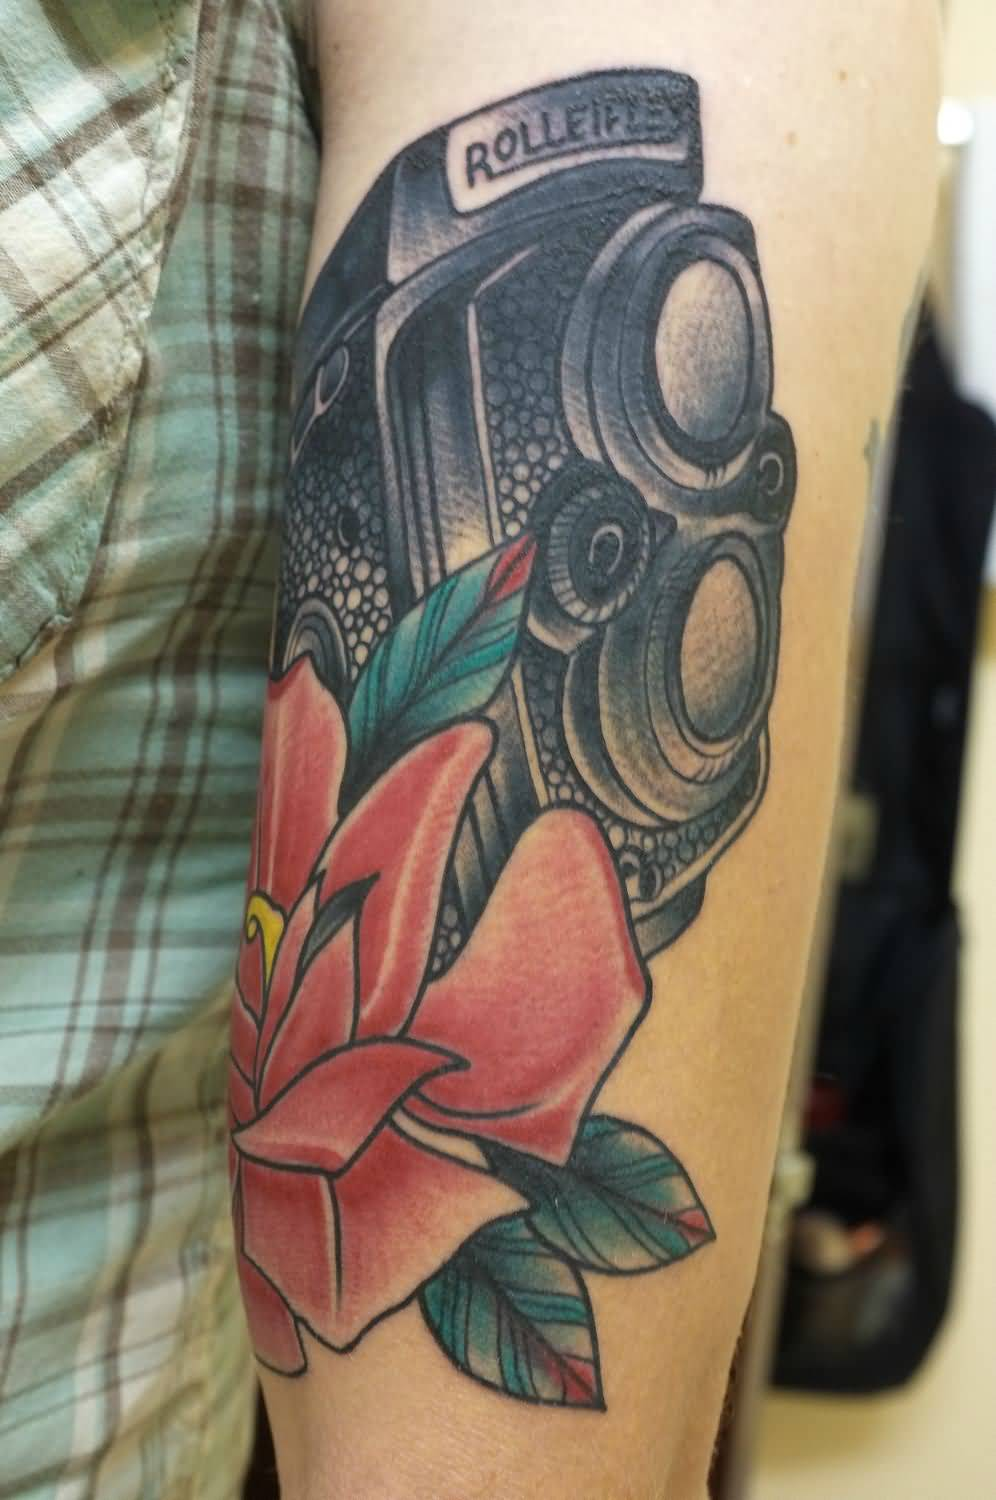 Cool Blue Black And Red Color Ink Rolleiflex Camera Tattoo With Flower On Arm For Boys